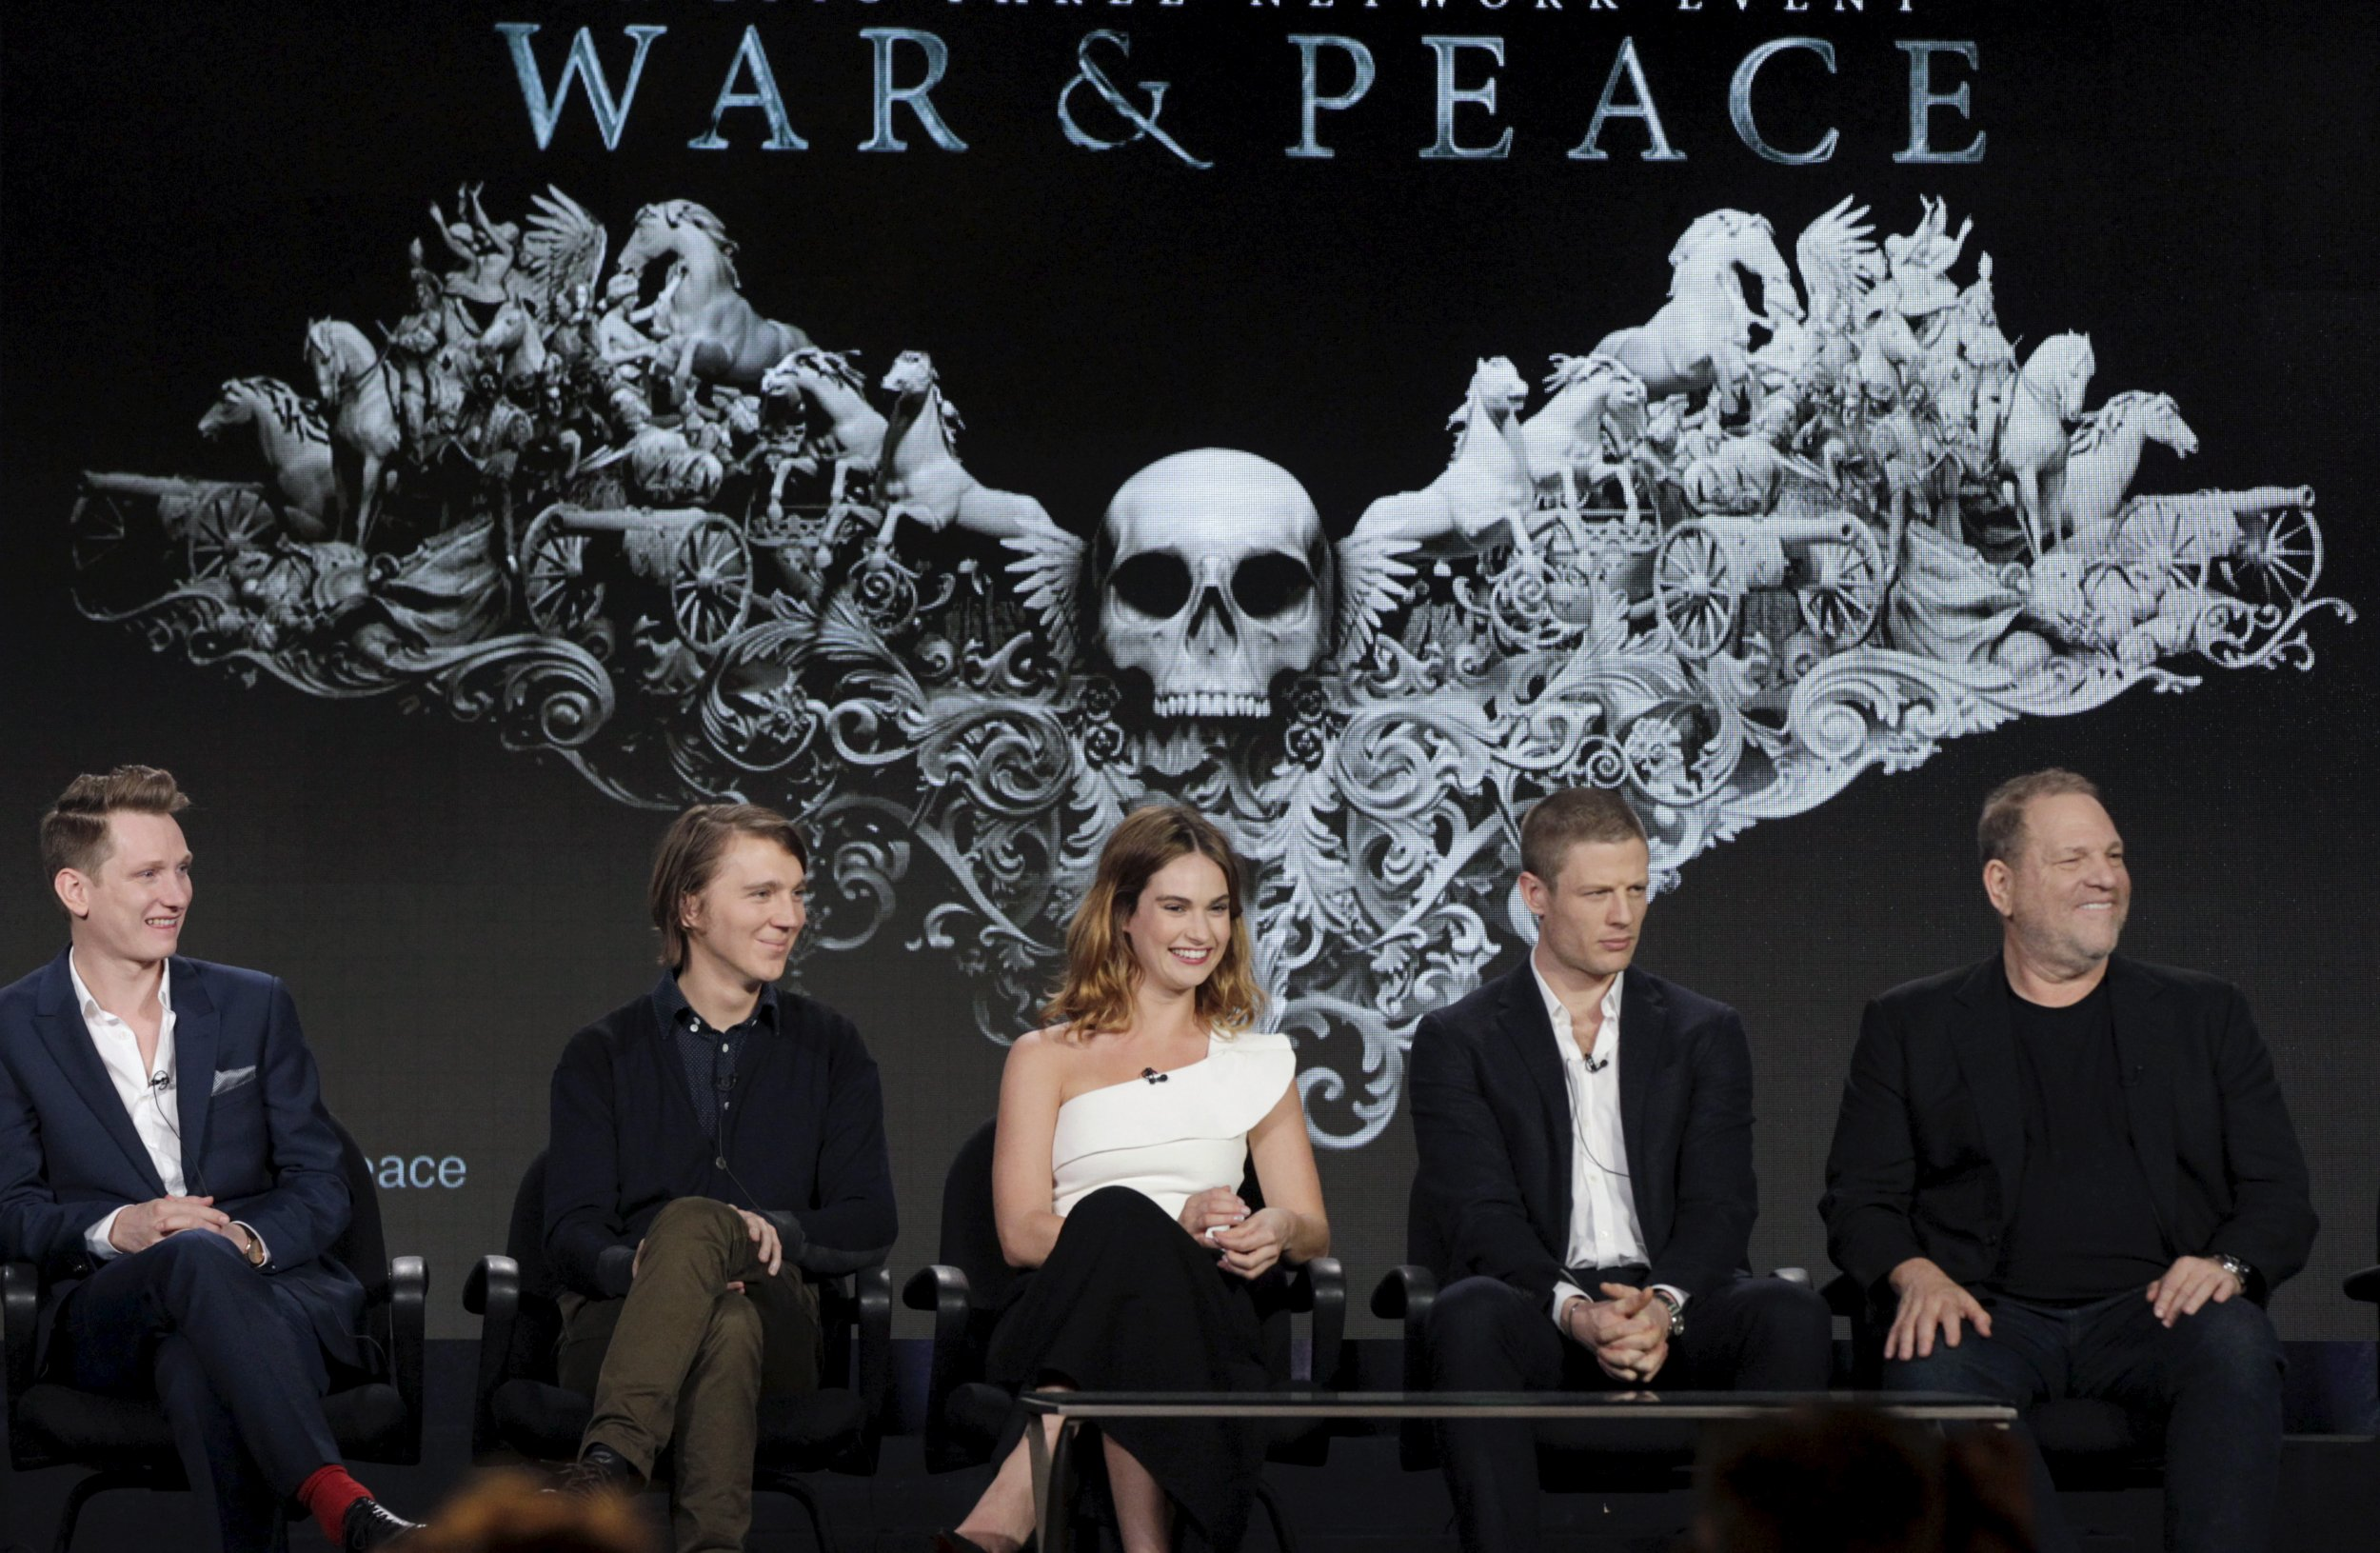 BBC Series Gives War and Peace First UK Bestseller Spot